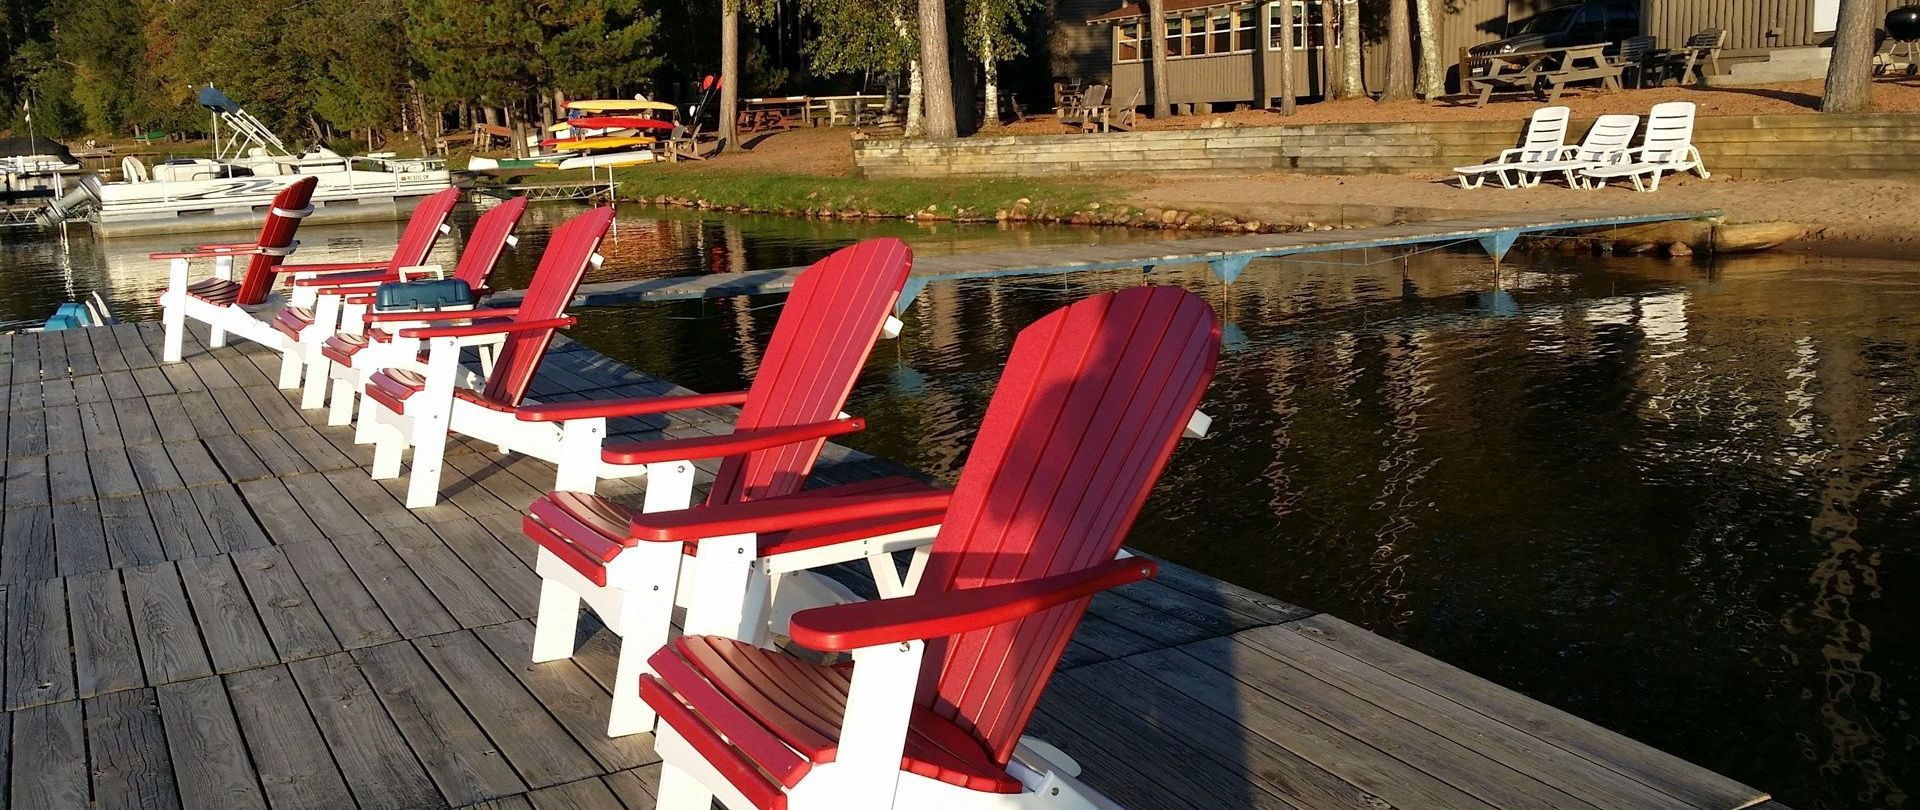 Big Dock! Comfy Chairs!